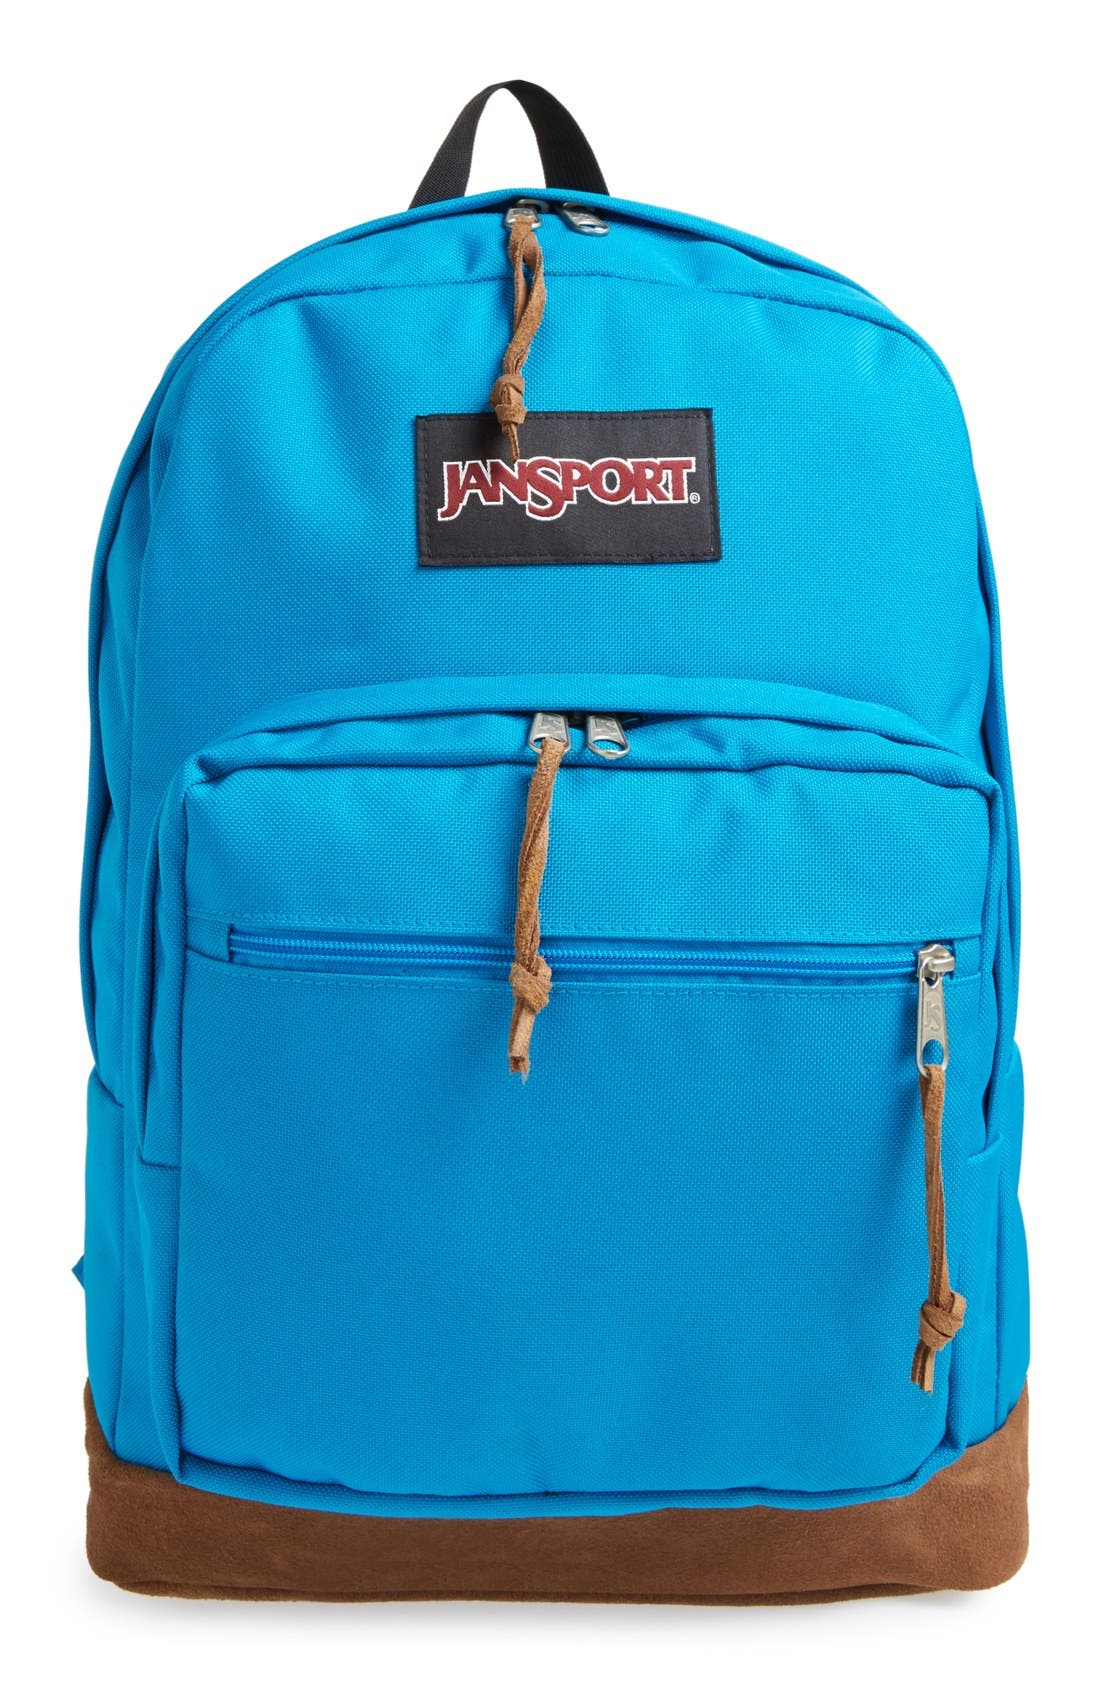 Main Image - Jansport 'Right Pack' Backpack